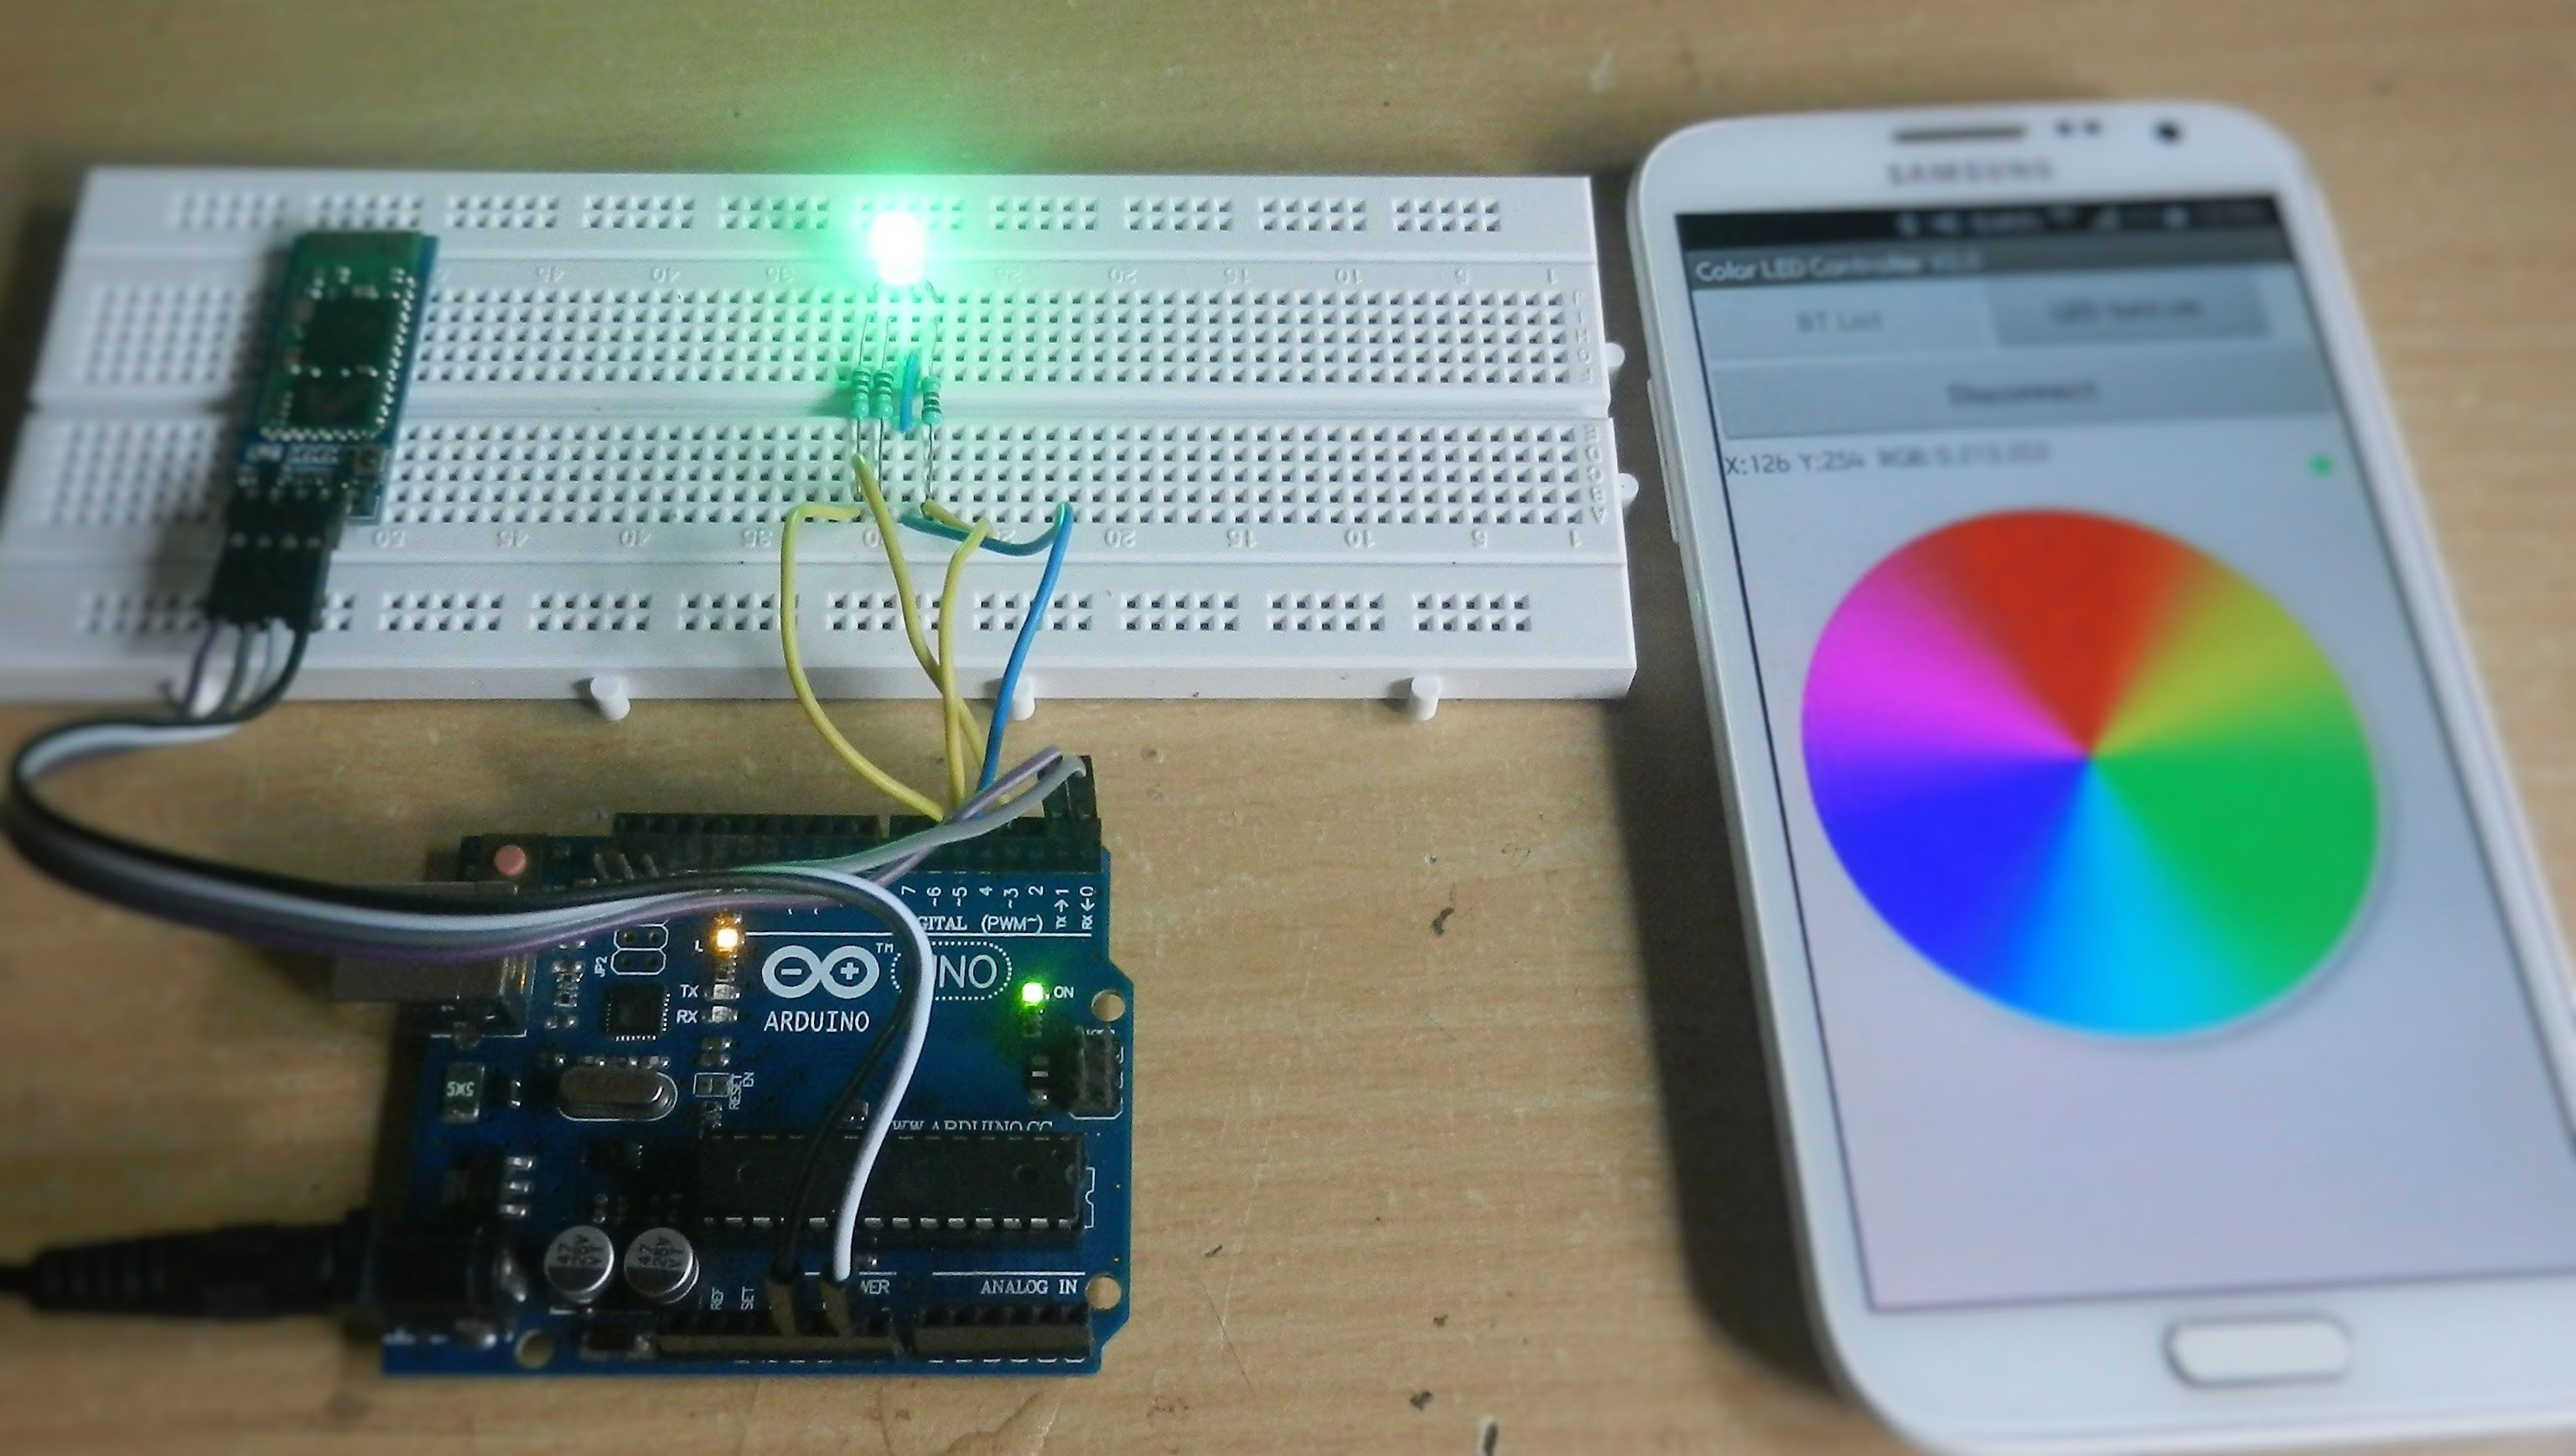 Arduino Rgb Led Control Using Bluetooth Jercio Pinterest Photo Interrupter Circuit For Digital Logic Smartphone Android